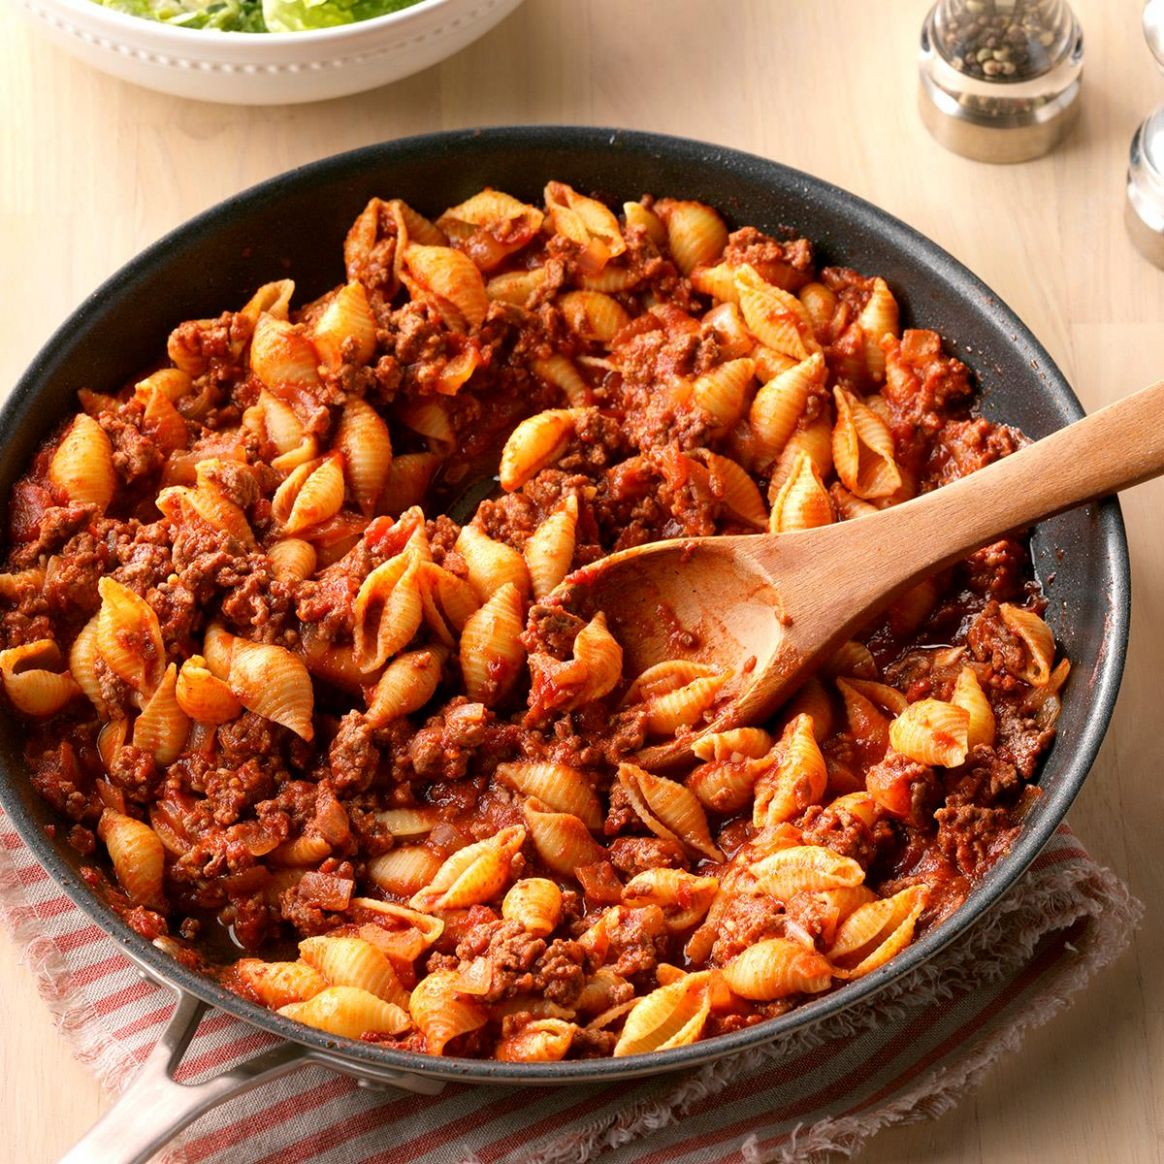 Stovetop Beef and Shells - Dinner Recipes Without Dairy